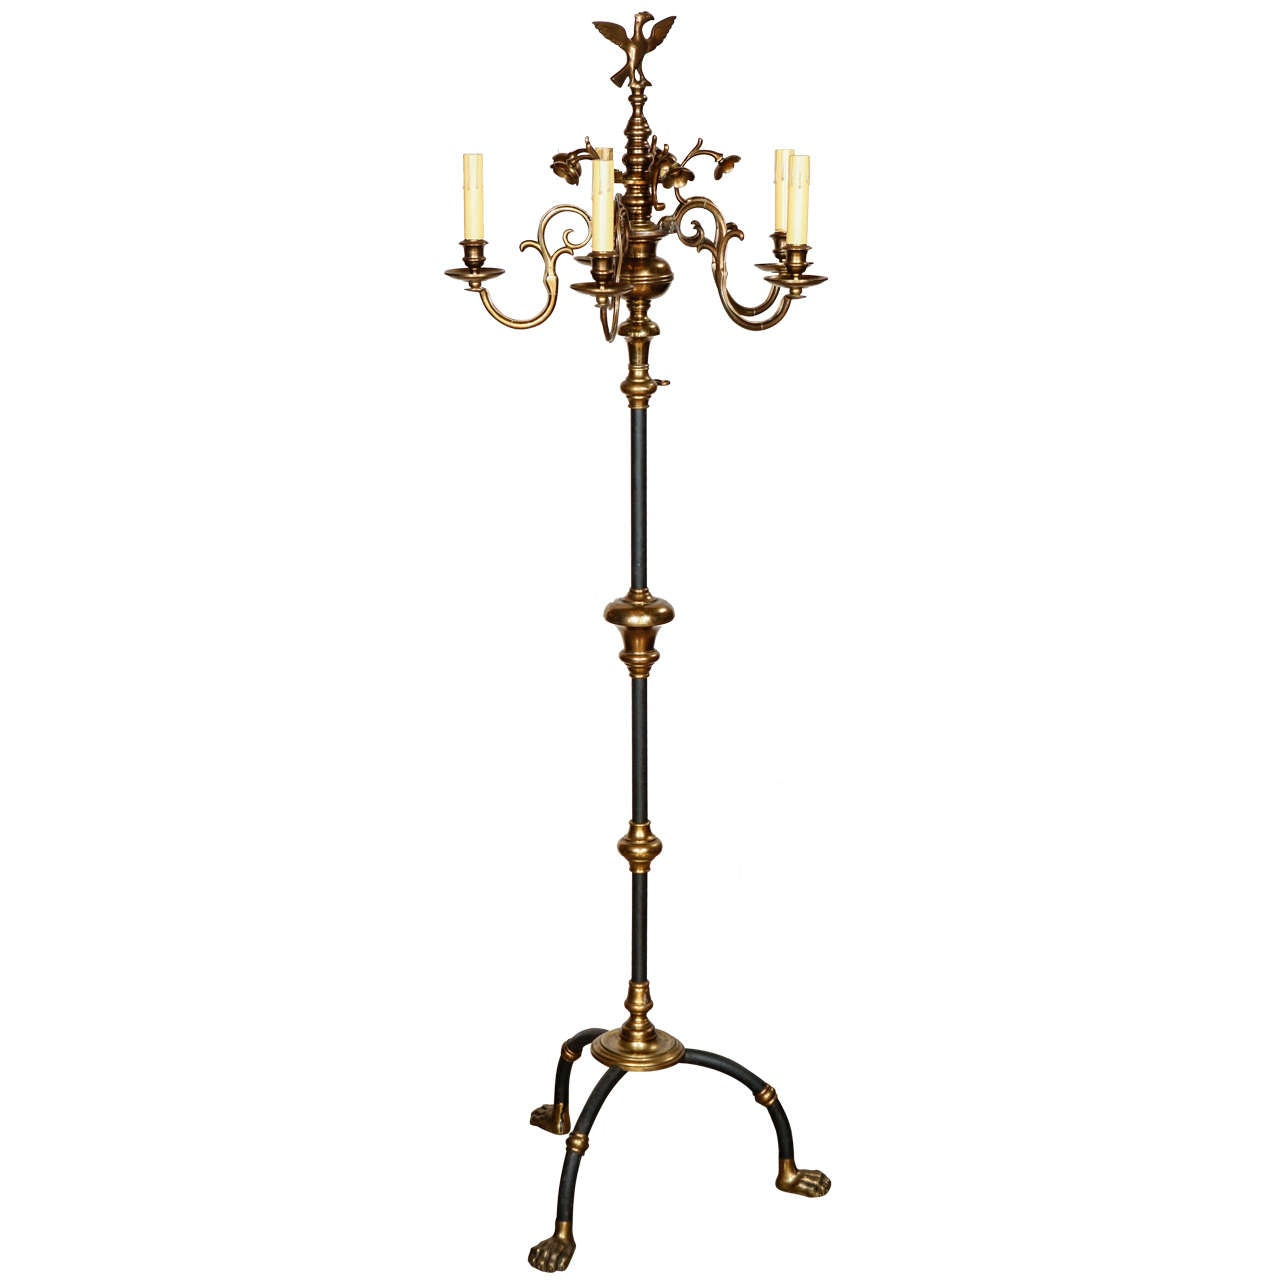 Spectacular Hollywood Regency Italian Floor Lamp